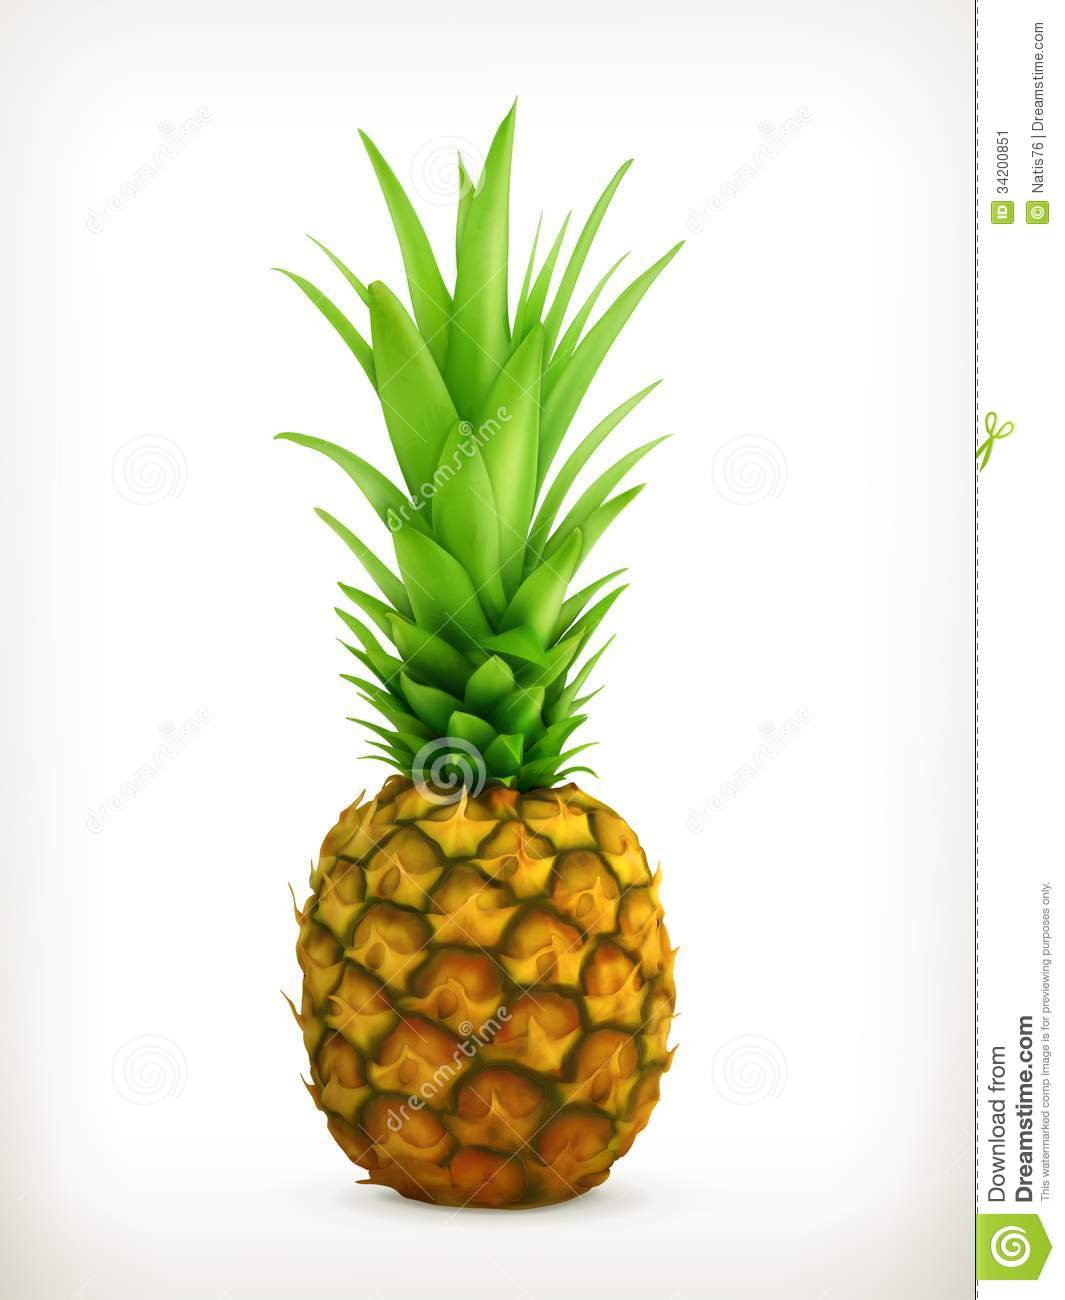 Pineapple, illustration on white background.